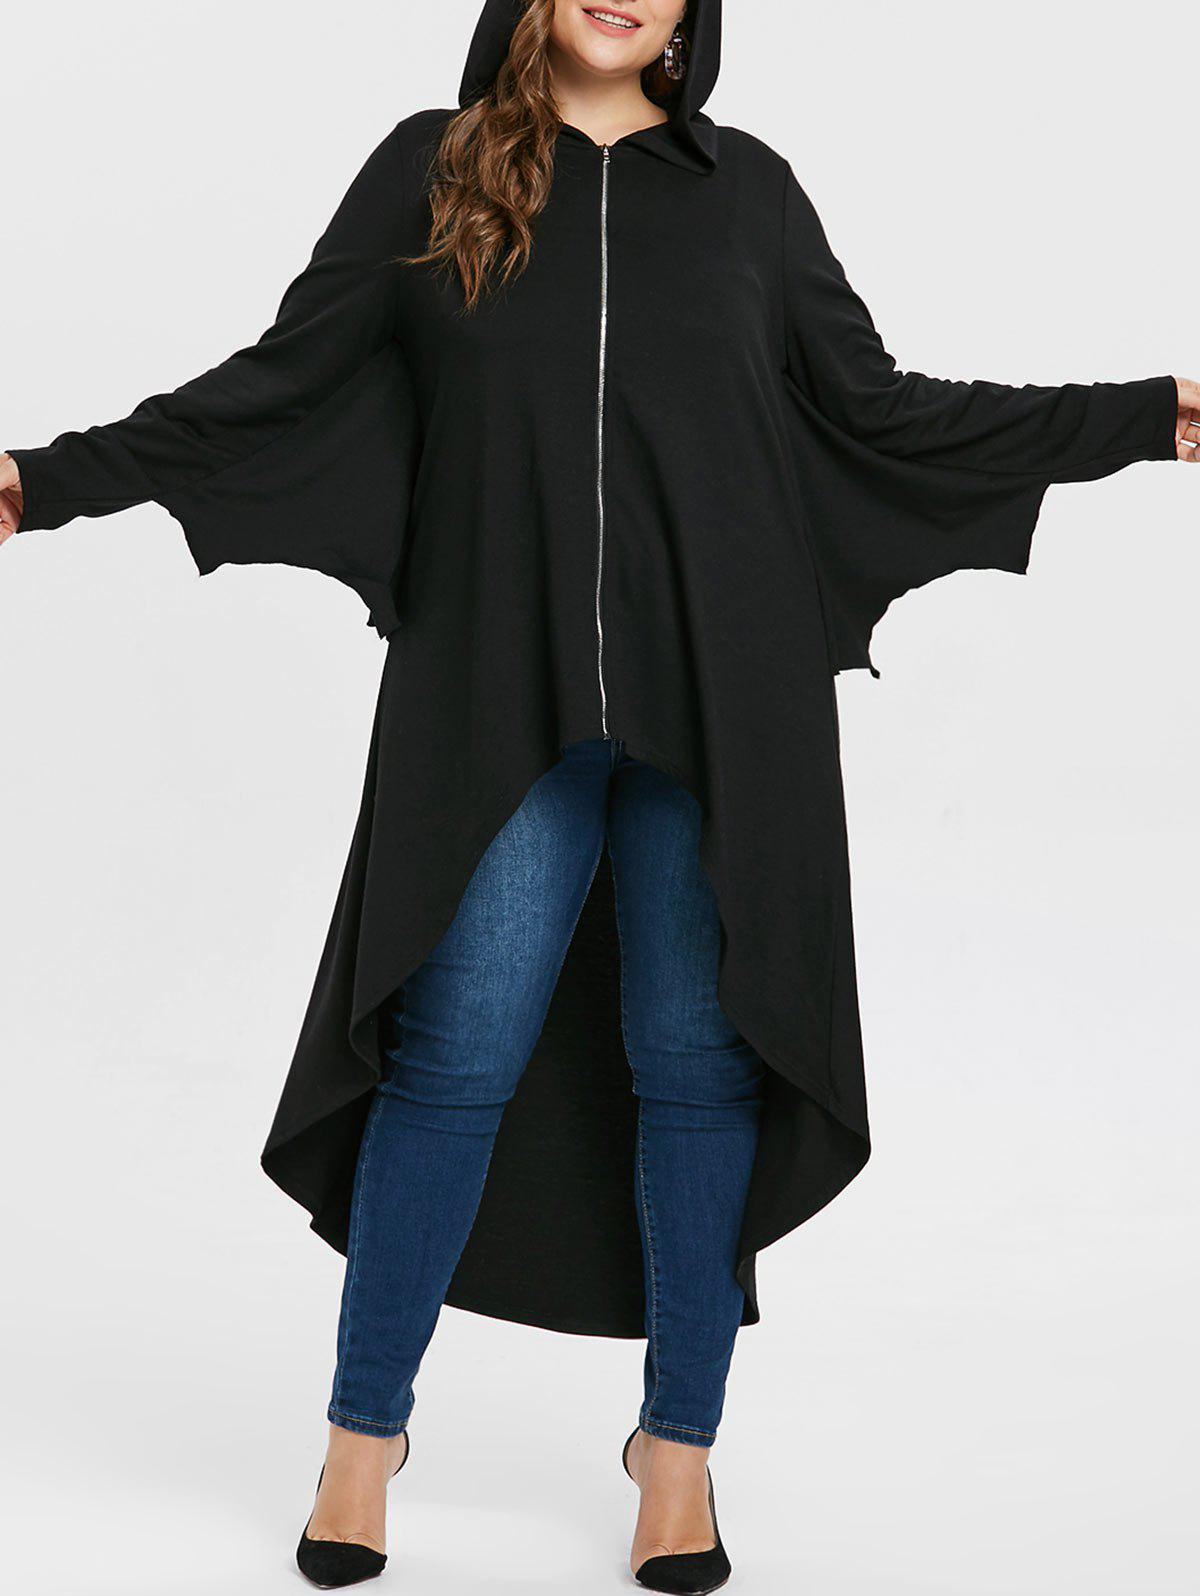 Discount Halloween Plus Size Batwing Sleeve Long Coat